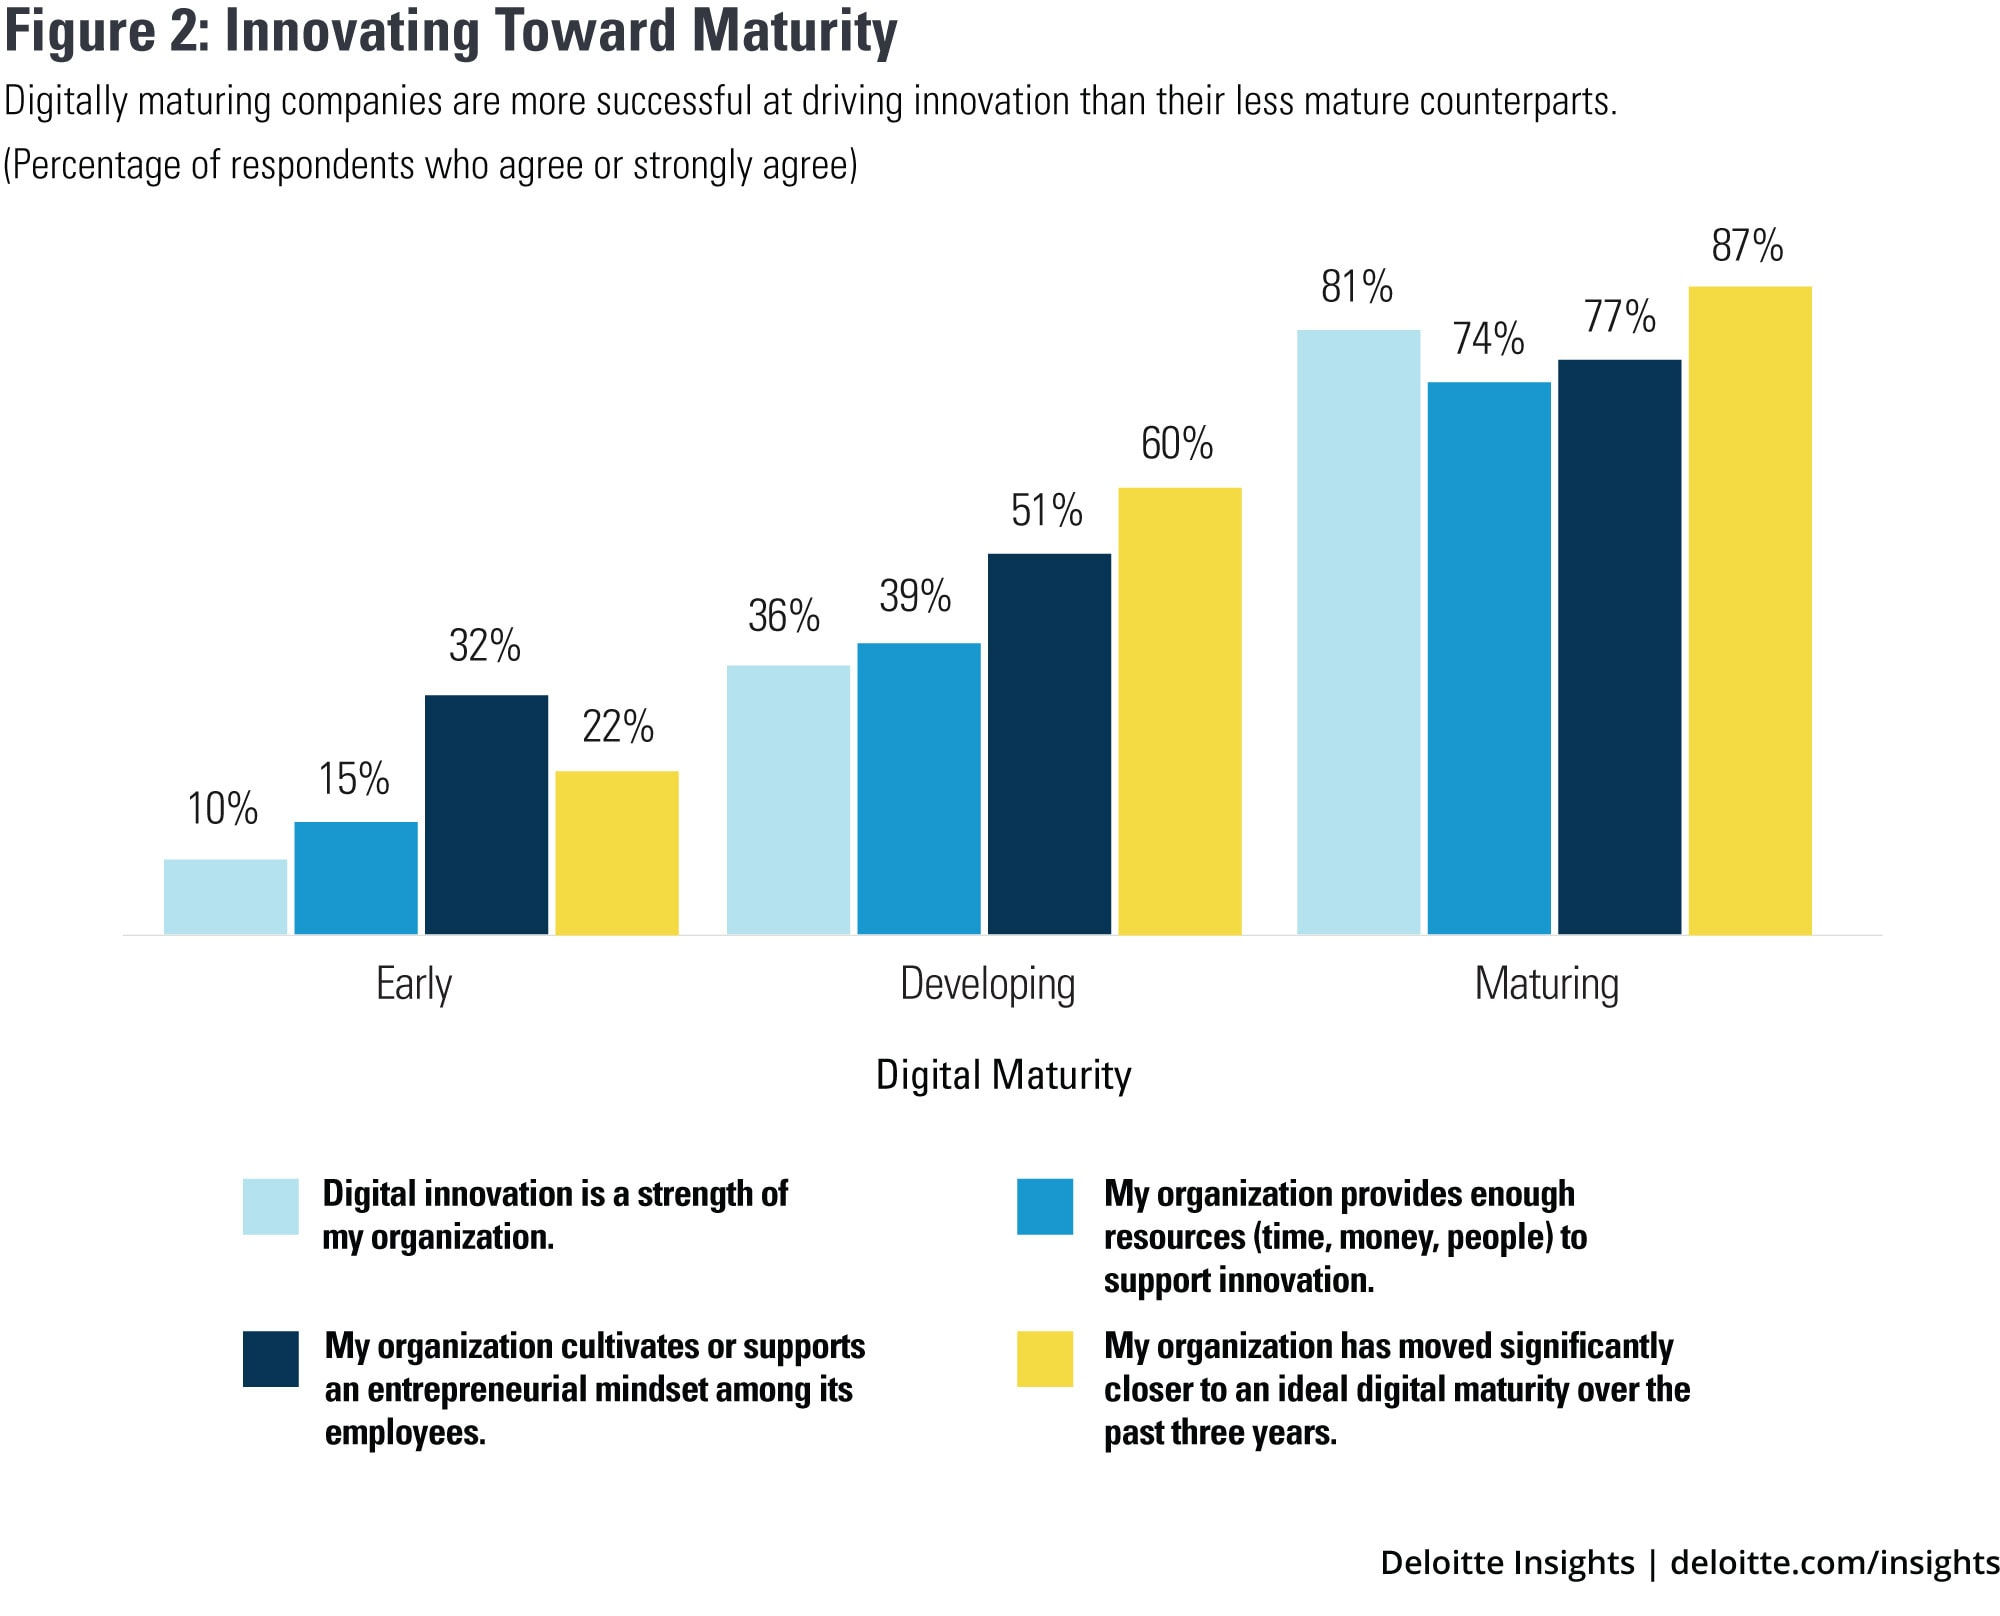 Innovating toward maturity